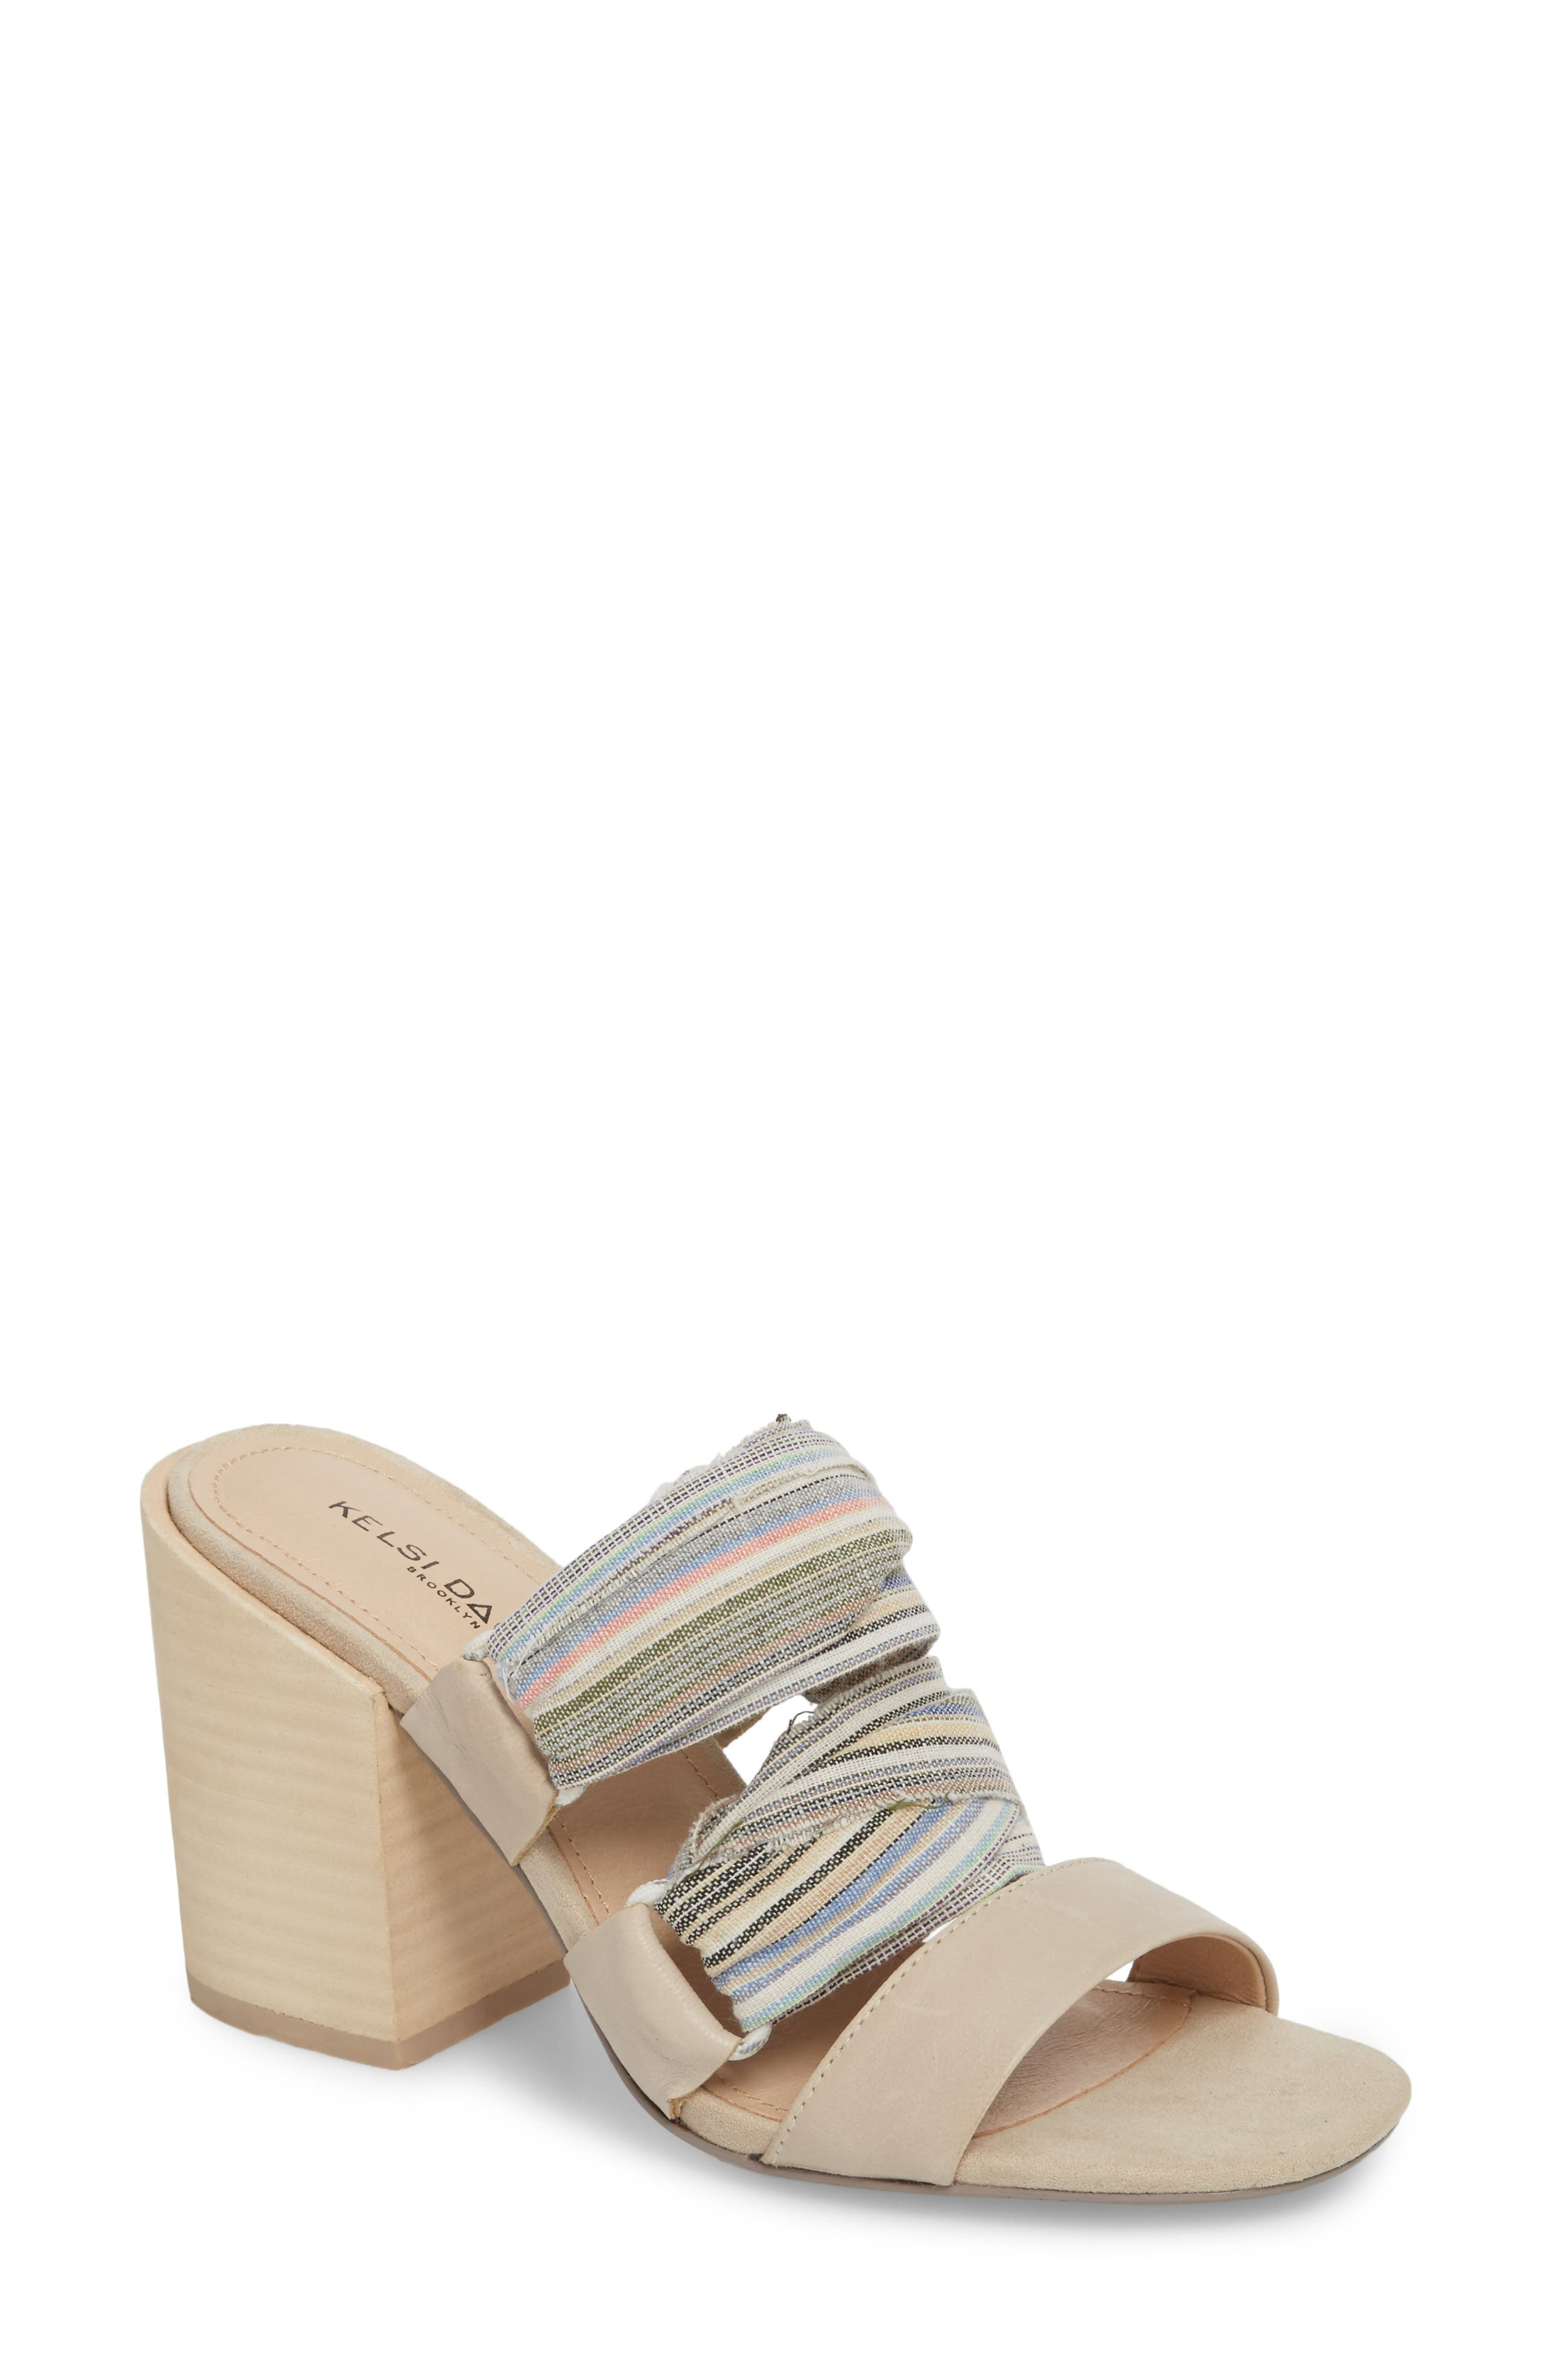 Monaco Block Heel Sandal,                             Main thumbnail 1, color,                             Bone/ Multi